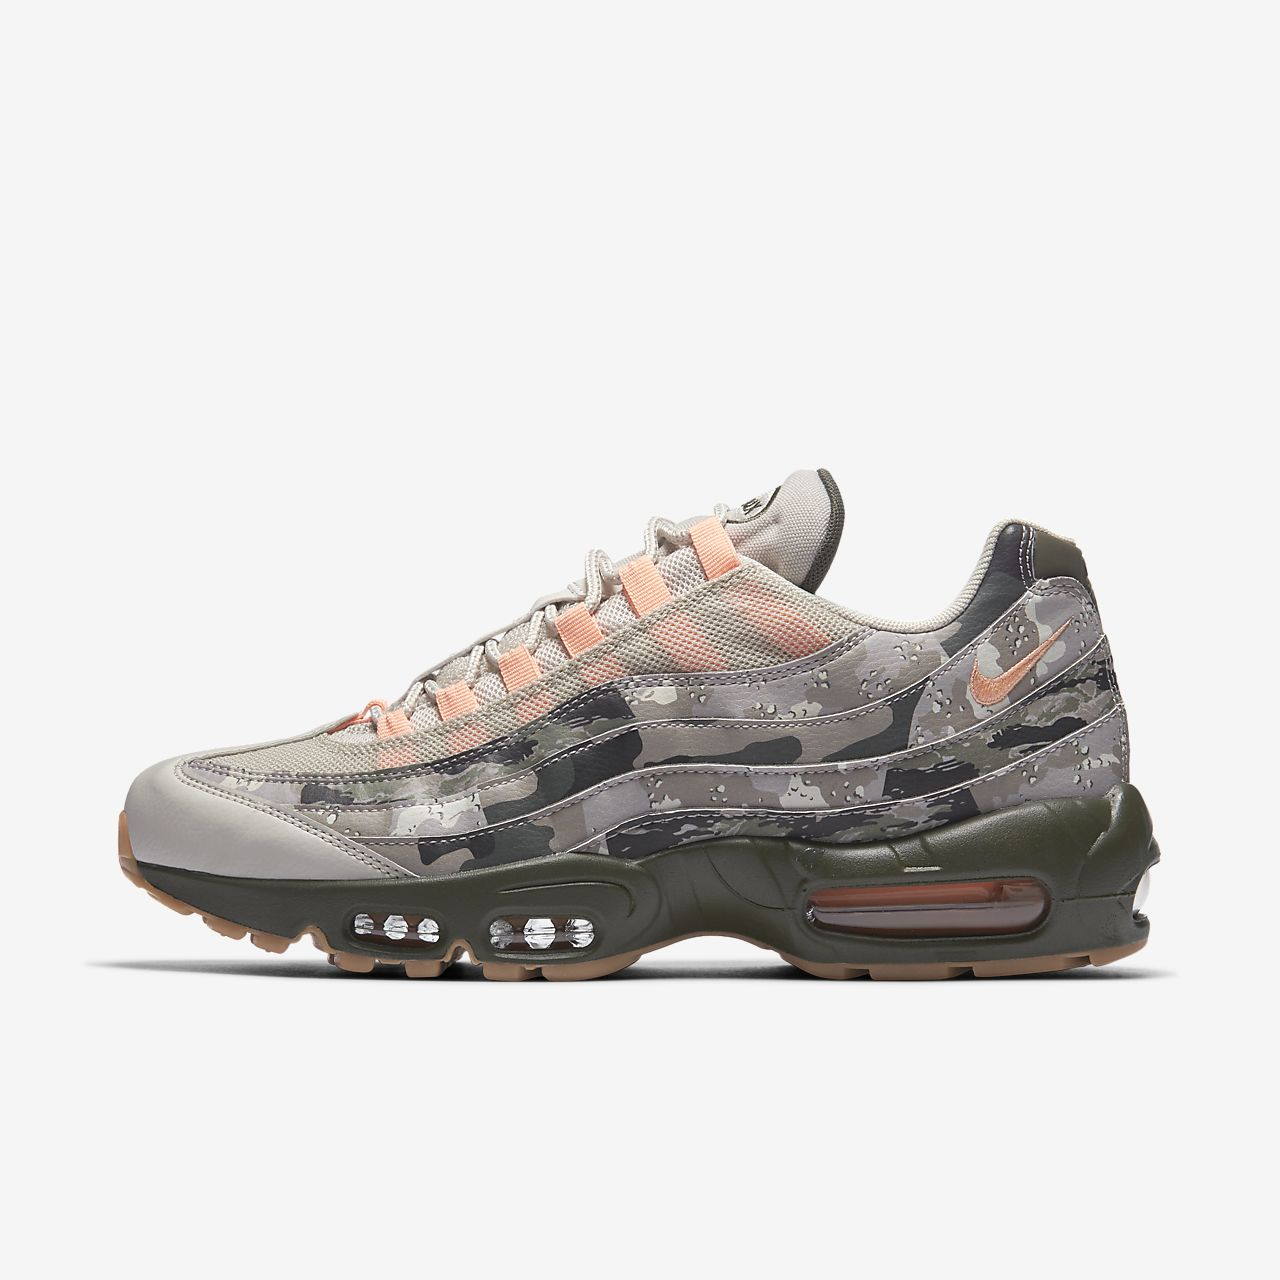 a4219adce352f ... promo code for nike air max 95 essential camo mens shoe 5f41b 6c44c